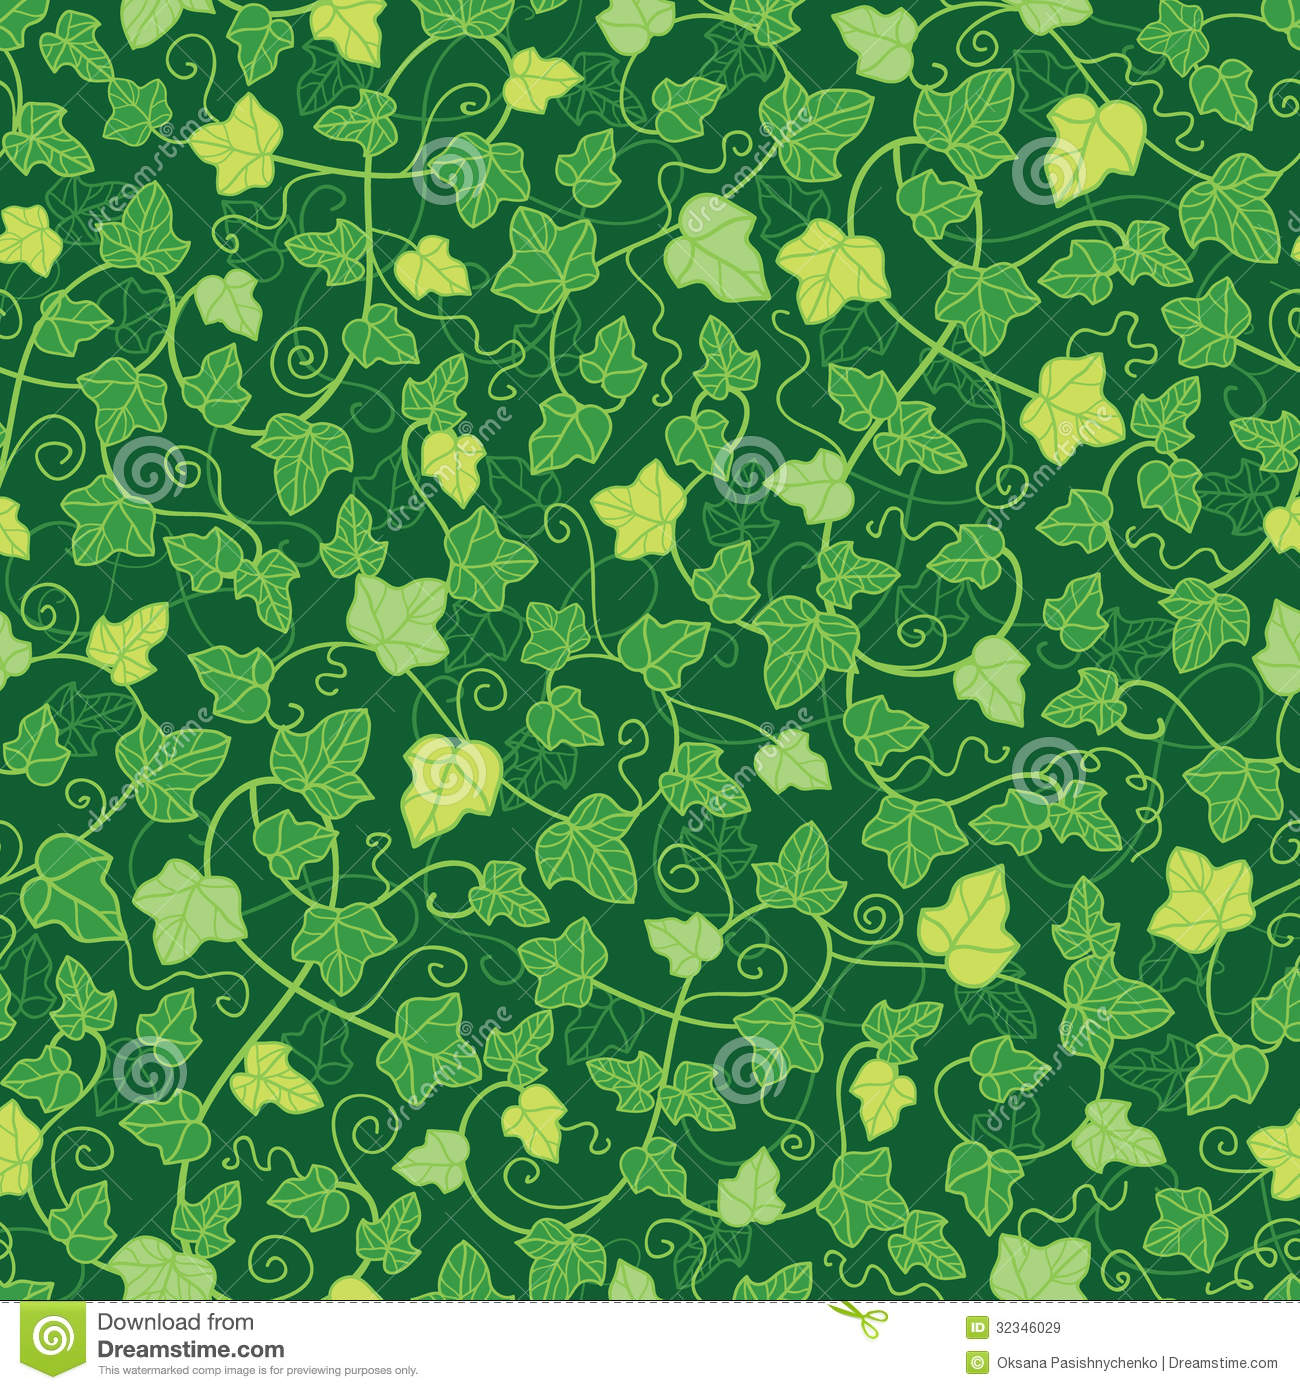 Green Ivy Plants Seamless Pattern Background Stock Image ...